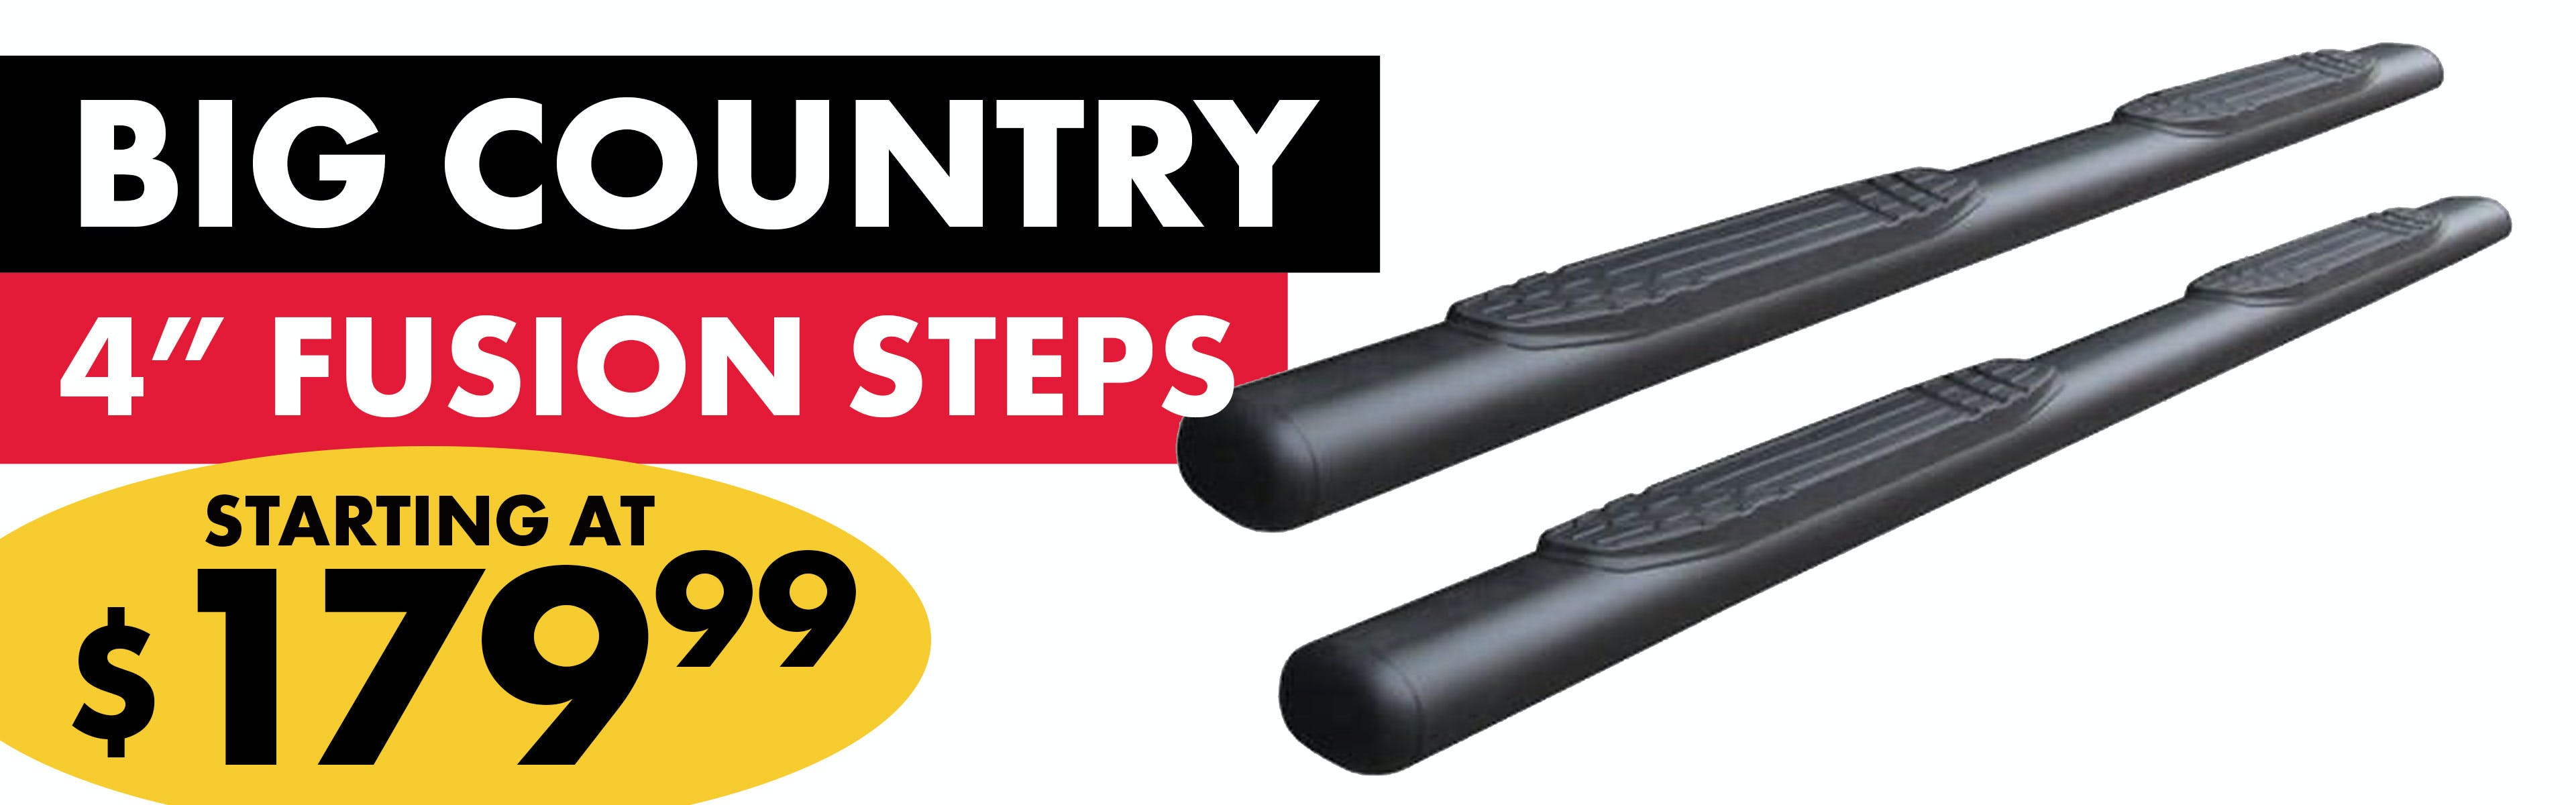 Big Country 4 Inch Fusion Steps